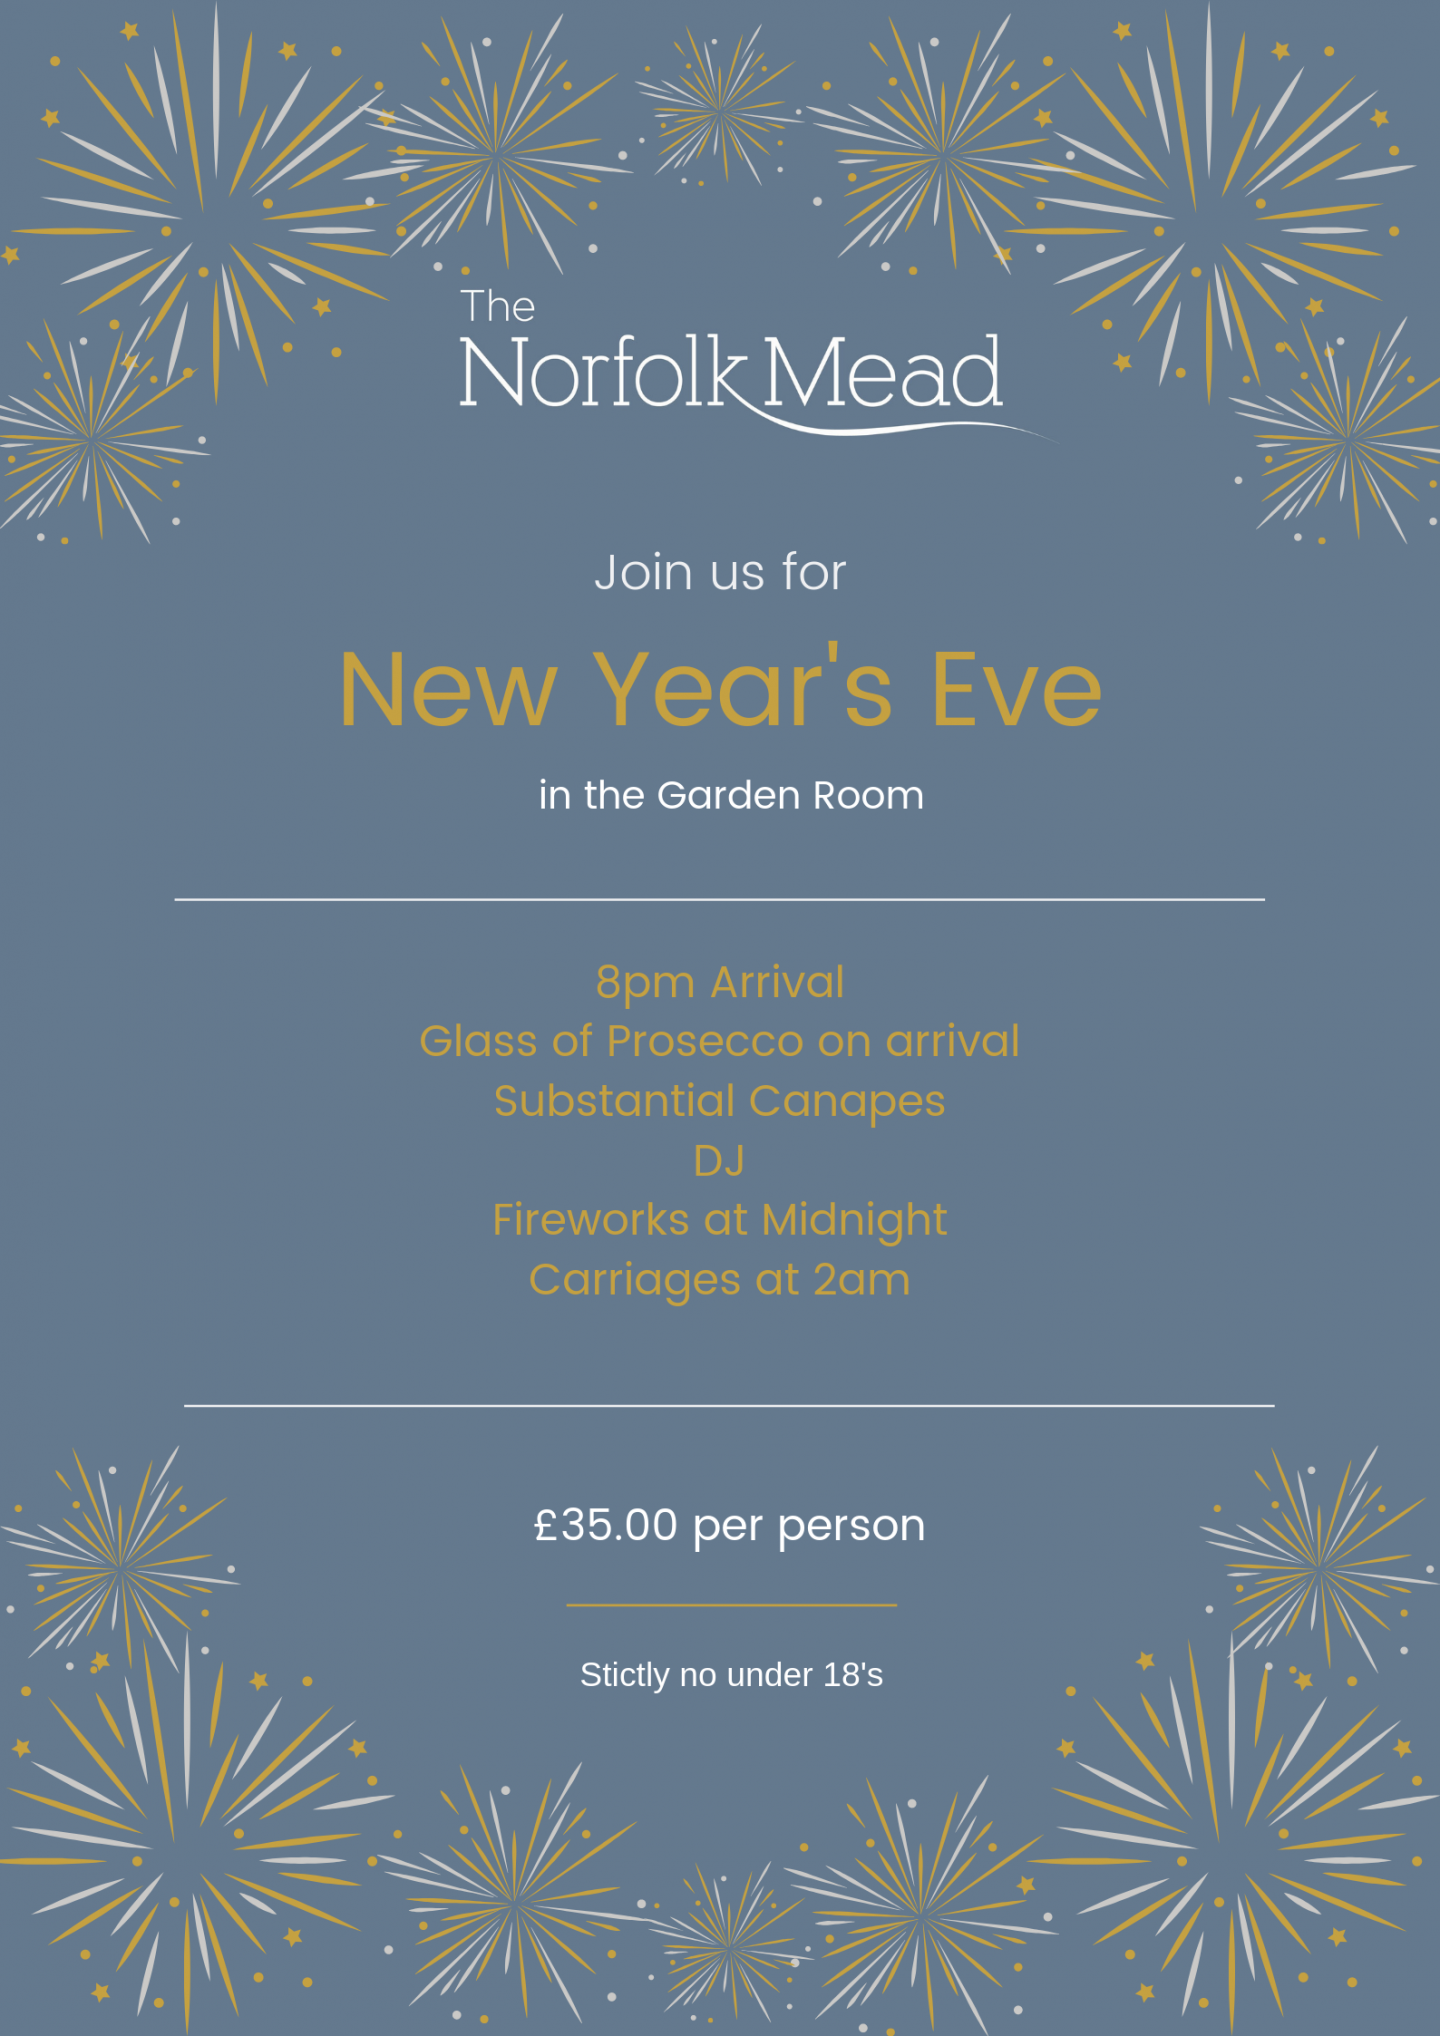 Norfolk Mead NYE in the Garden Room